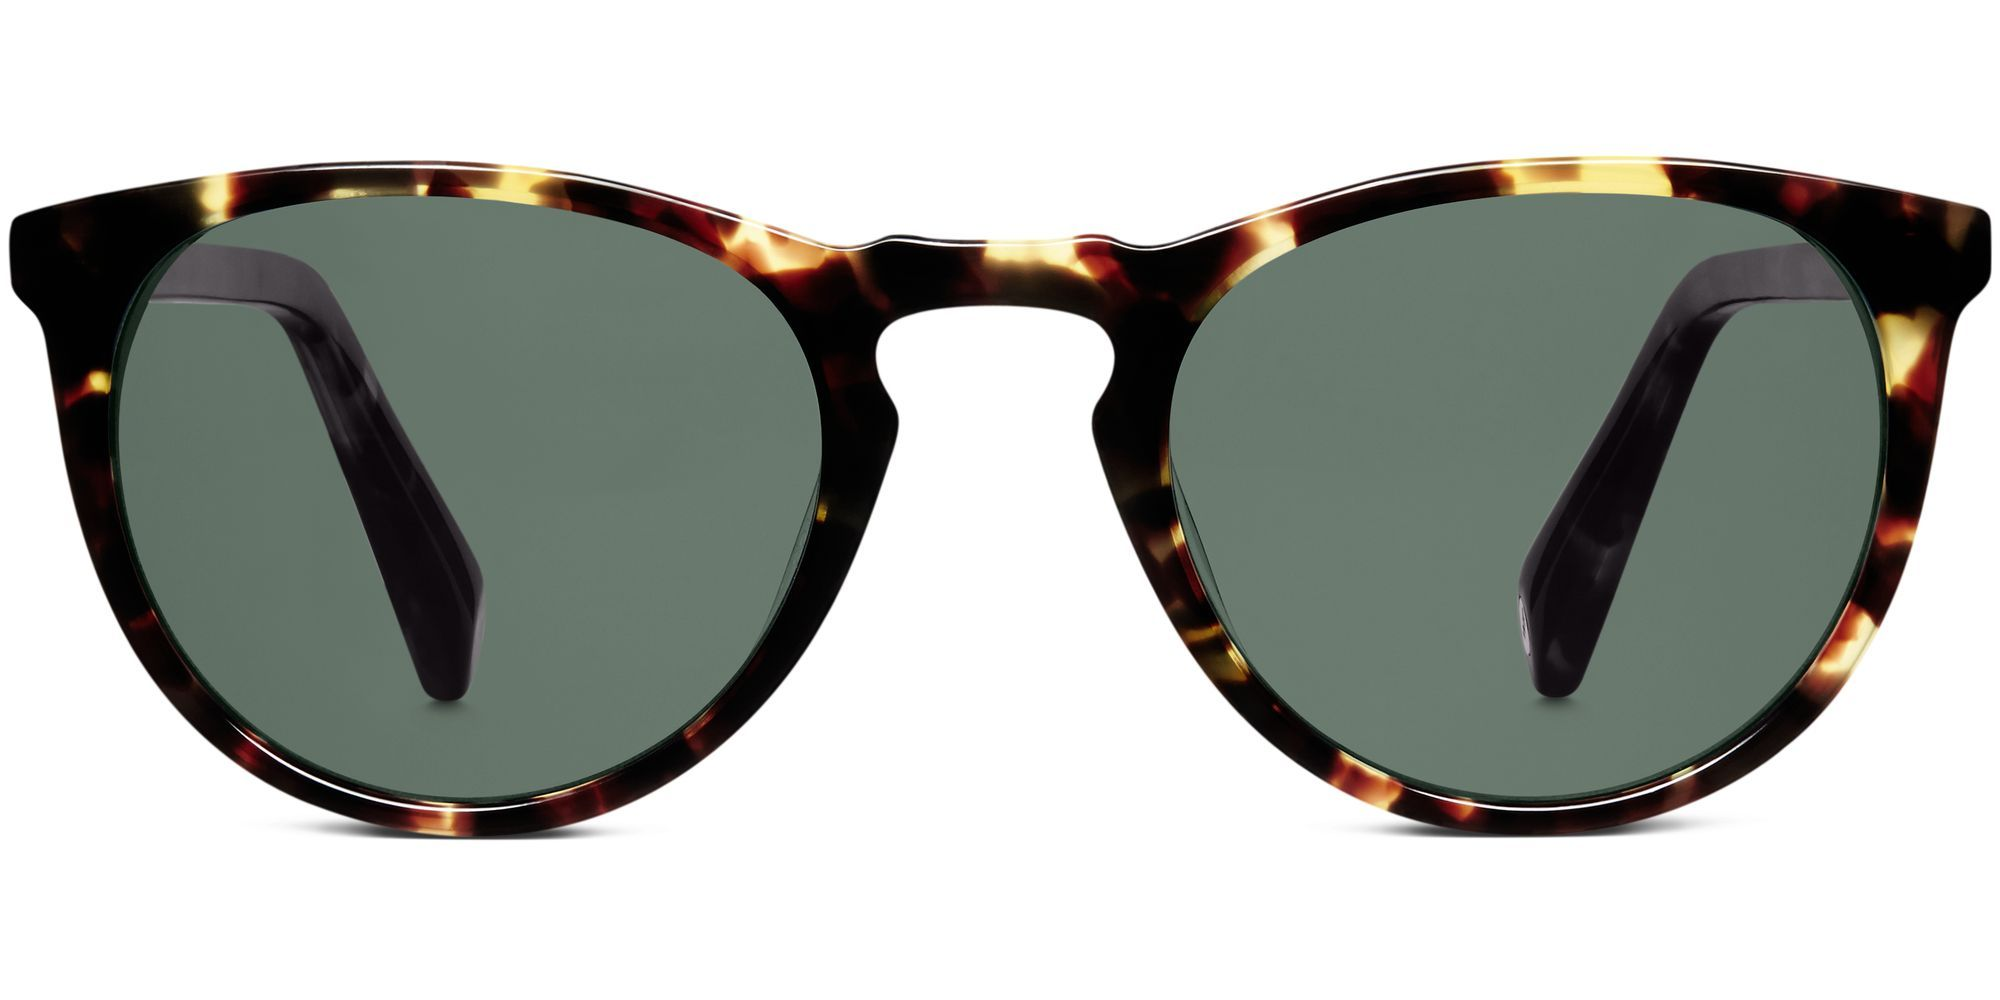 Haskell sunglasses in crystal for women warby parker